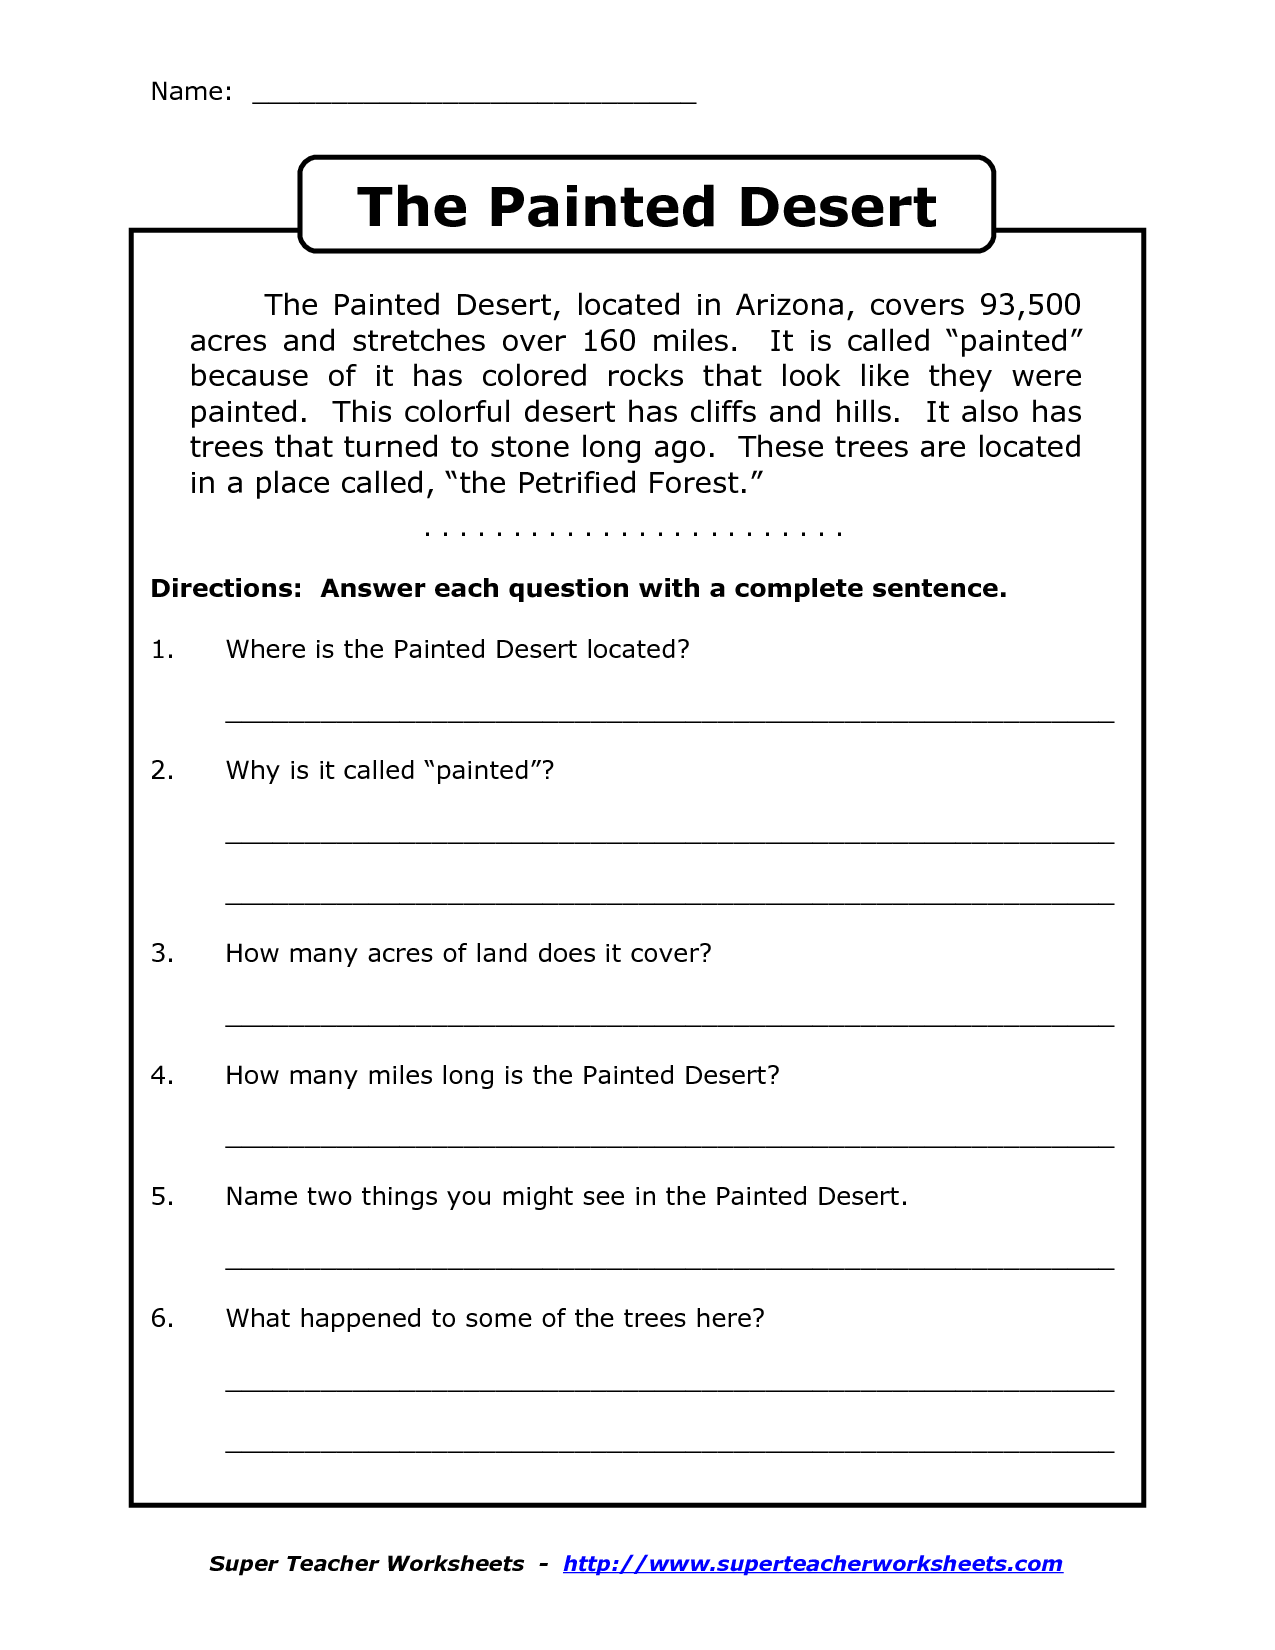 Worksheet 4th Grade Reading Comprehension Questions reading worksheets for 4th grade comprehension 3 name the painted desert